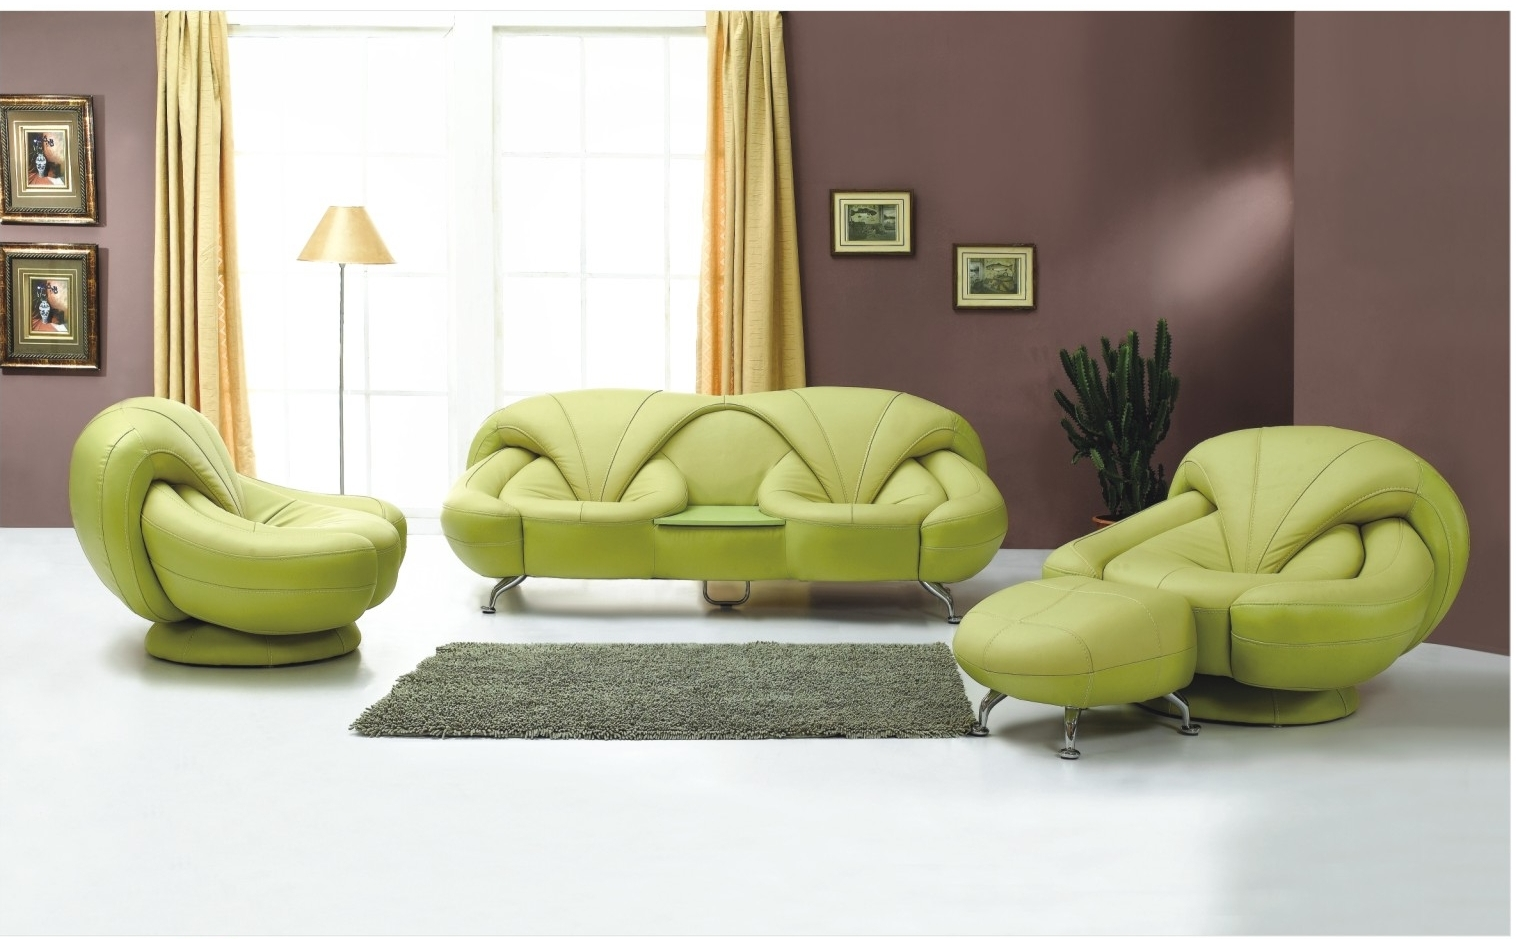 Green Leather Living Room Furniture on Living Room Furniture Design Ideas